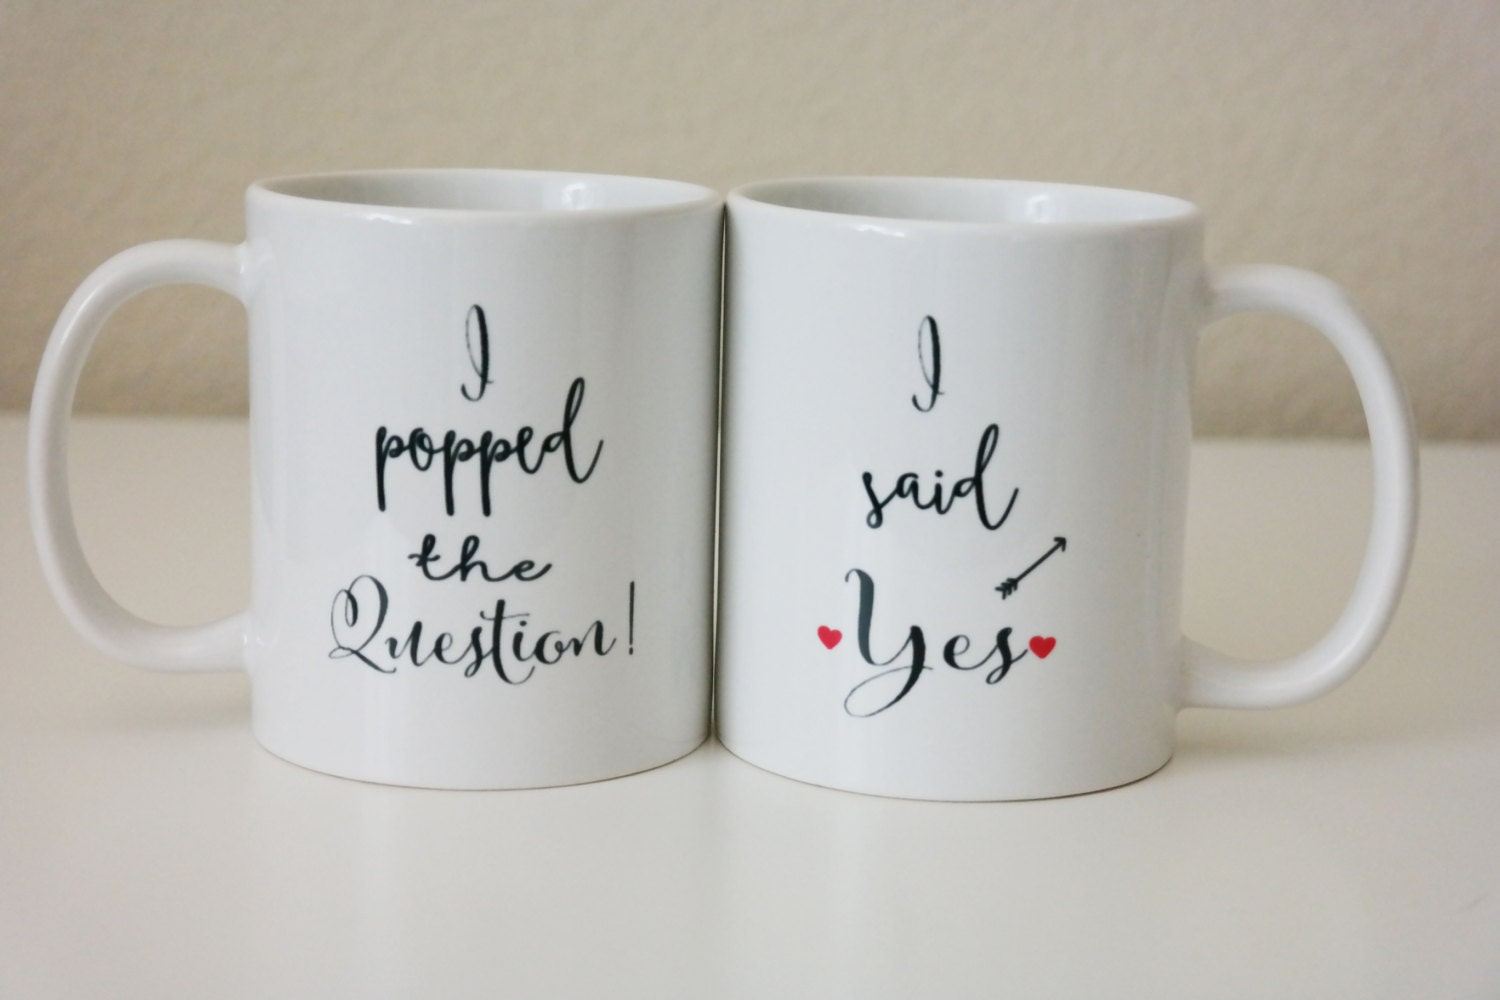 Wedding Gift Mugs Suggestions : Ideas Wedding Gift Mugs engagement coffee mugs announcement i by ...